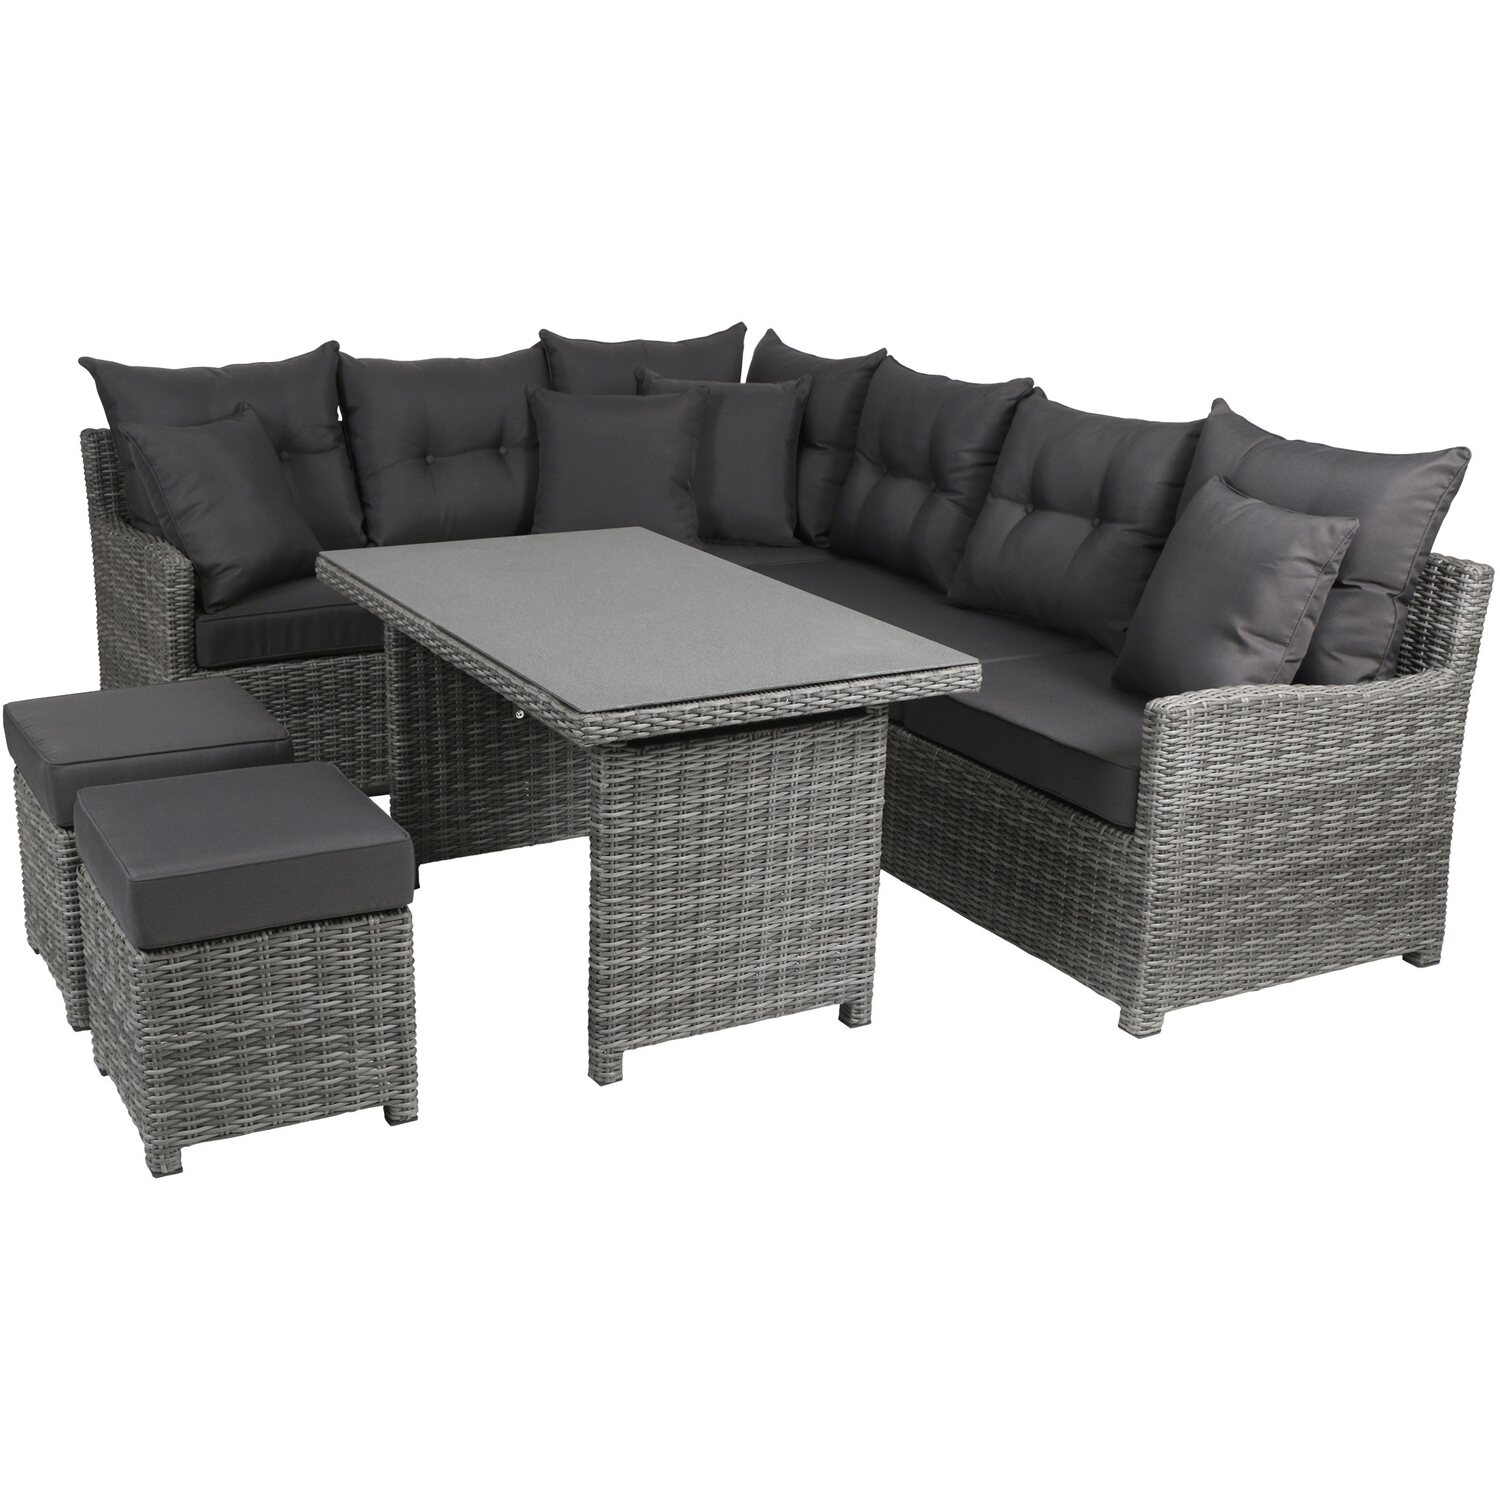 greemotion lounge set miami comfort kaufen bei obi. Black Bedroom Furniture Sets. Home Design Ideas